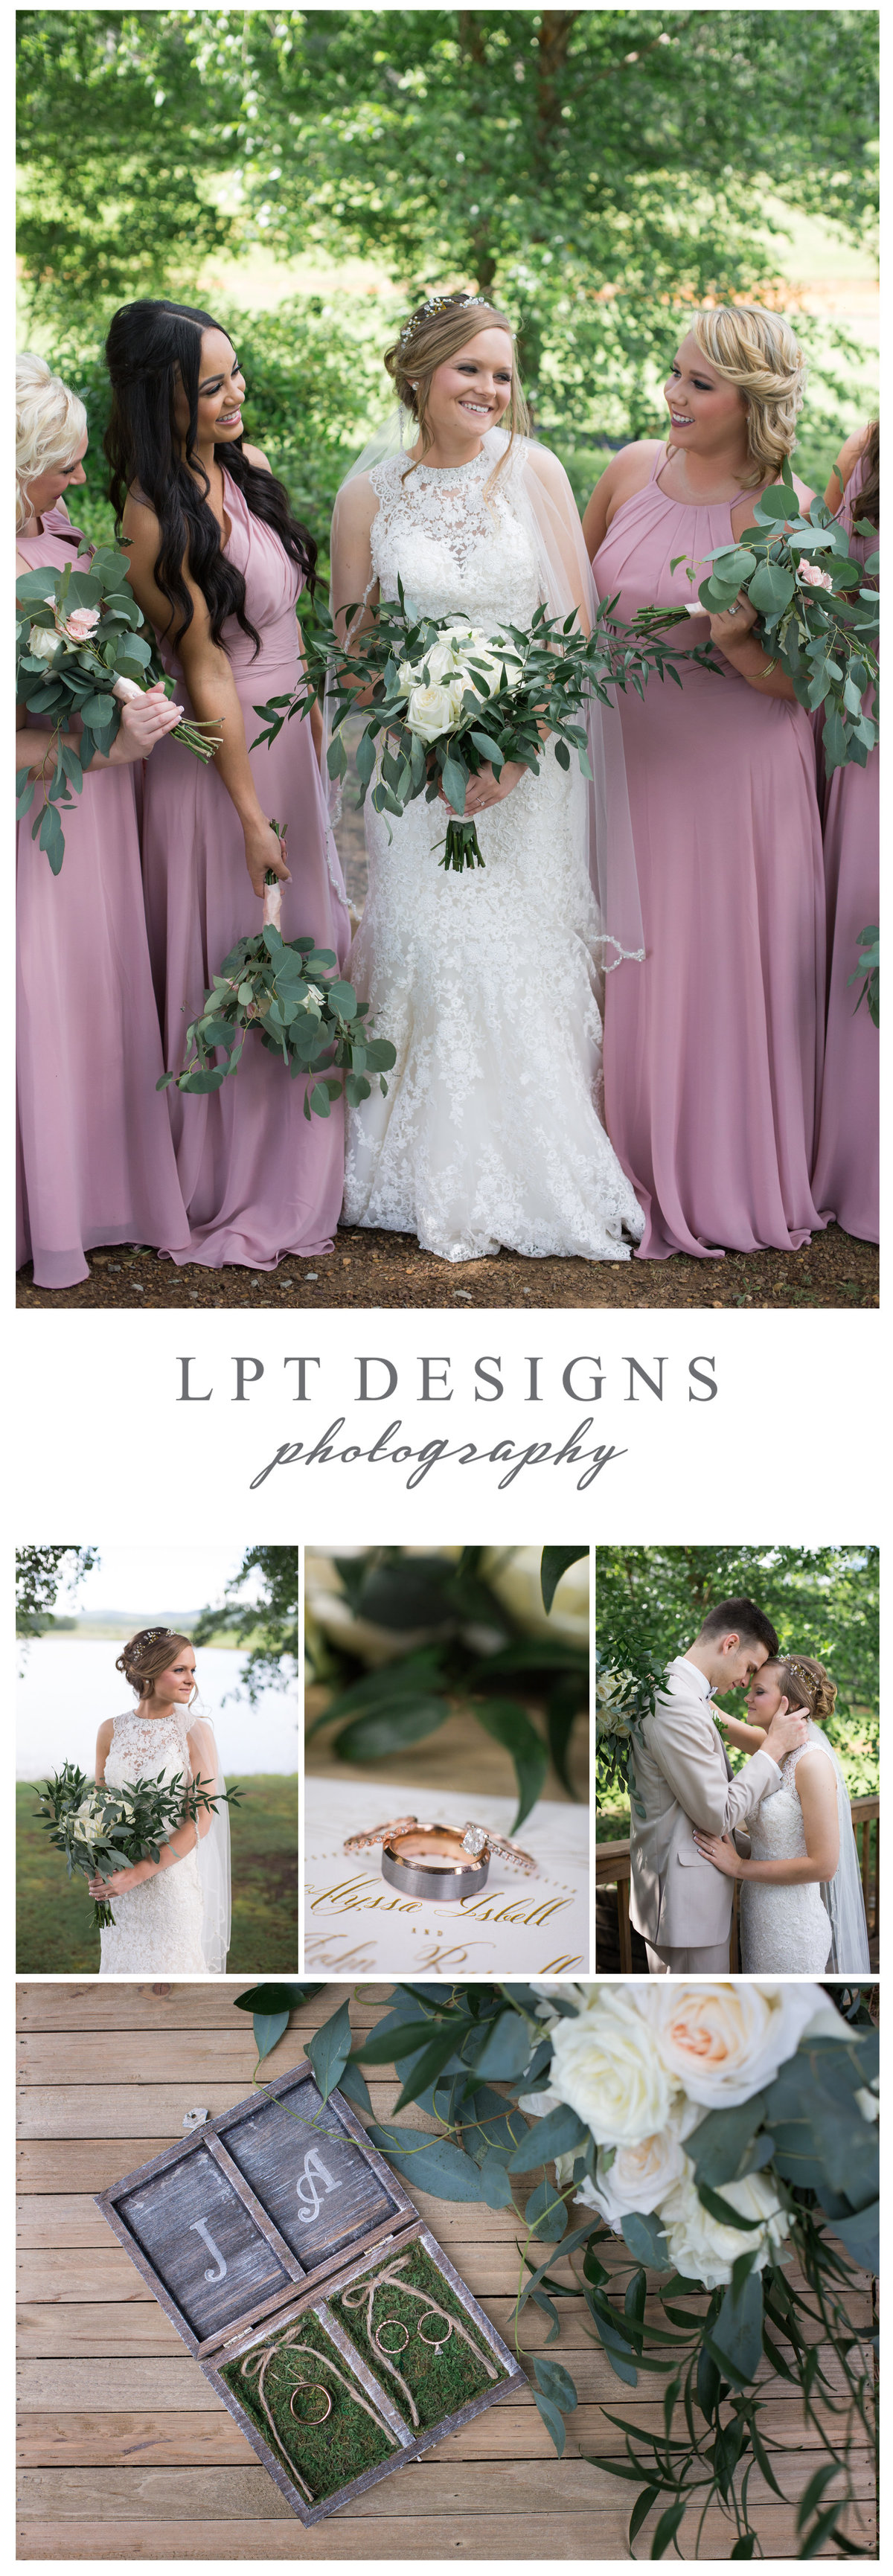 LPT Designs Photography Lydia Thrift Gadsden Alabama Fine Art Wedding Photographer AR 1